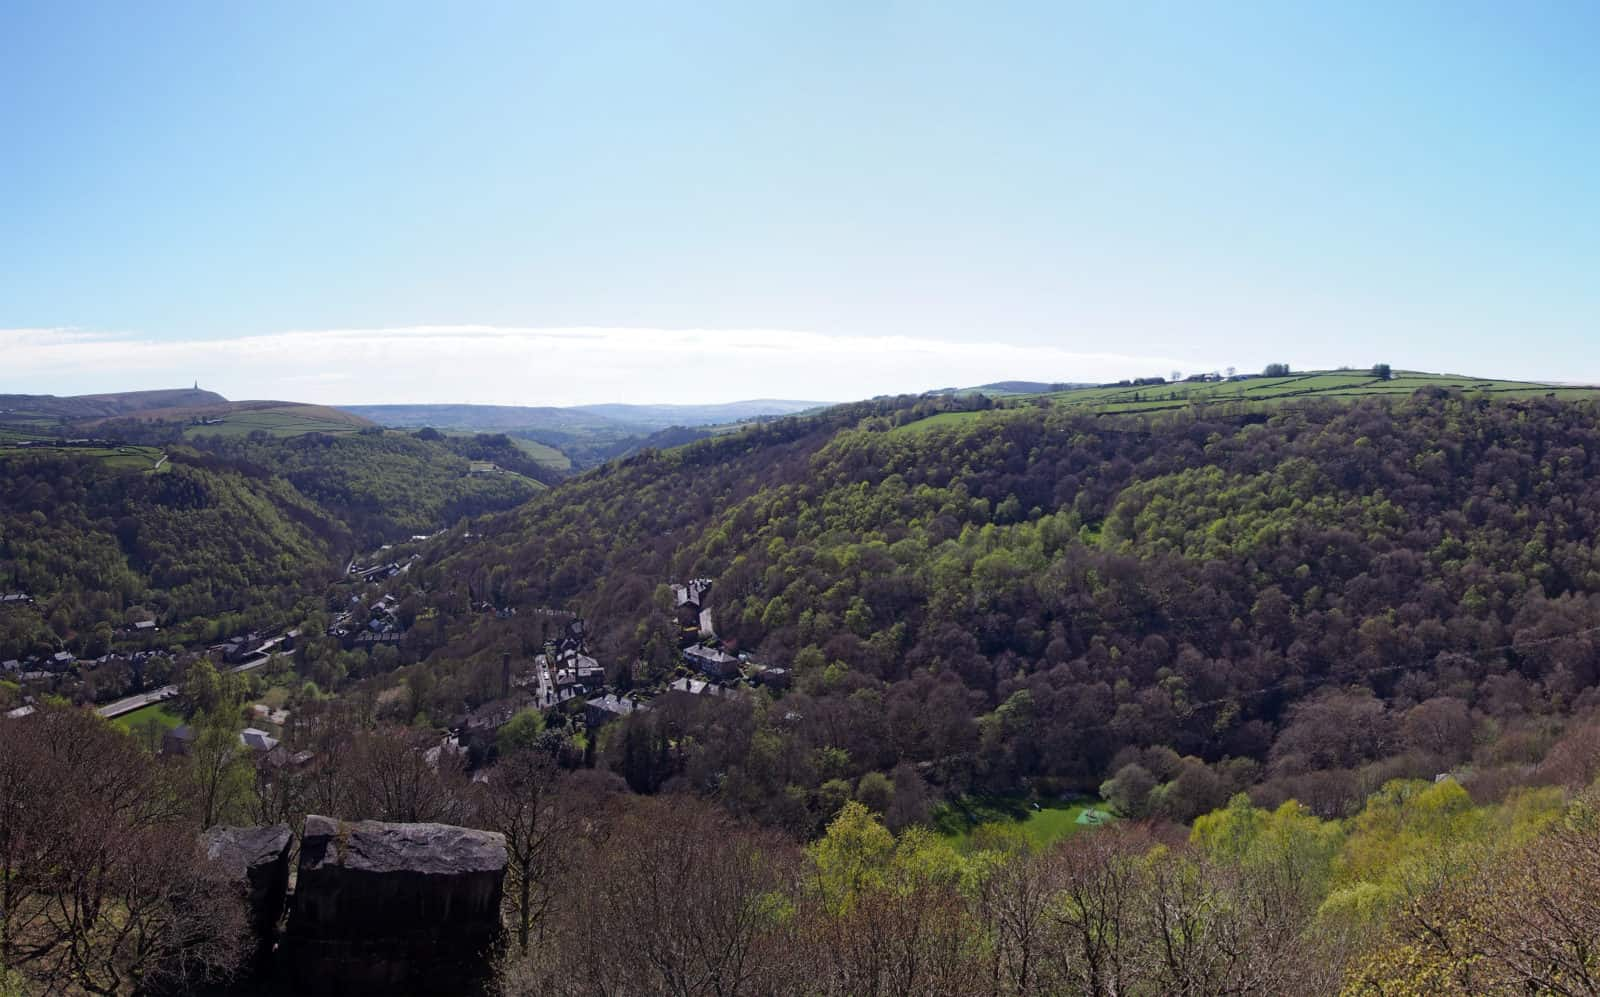 Colden valley and the town of Hebden Bridge